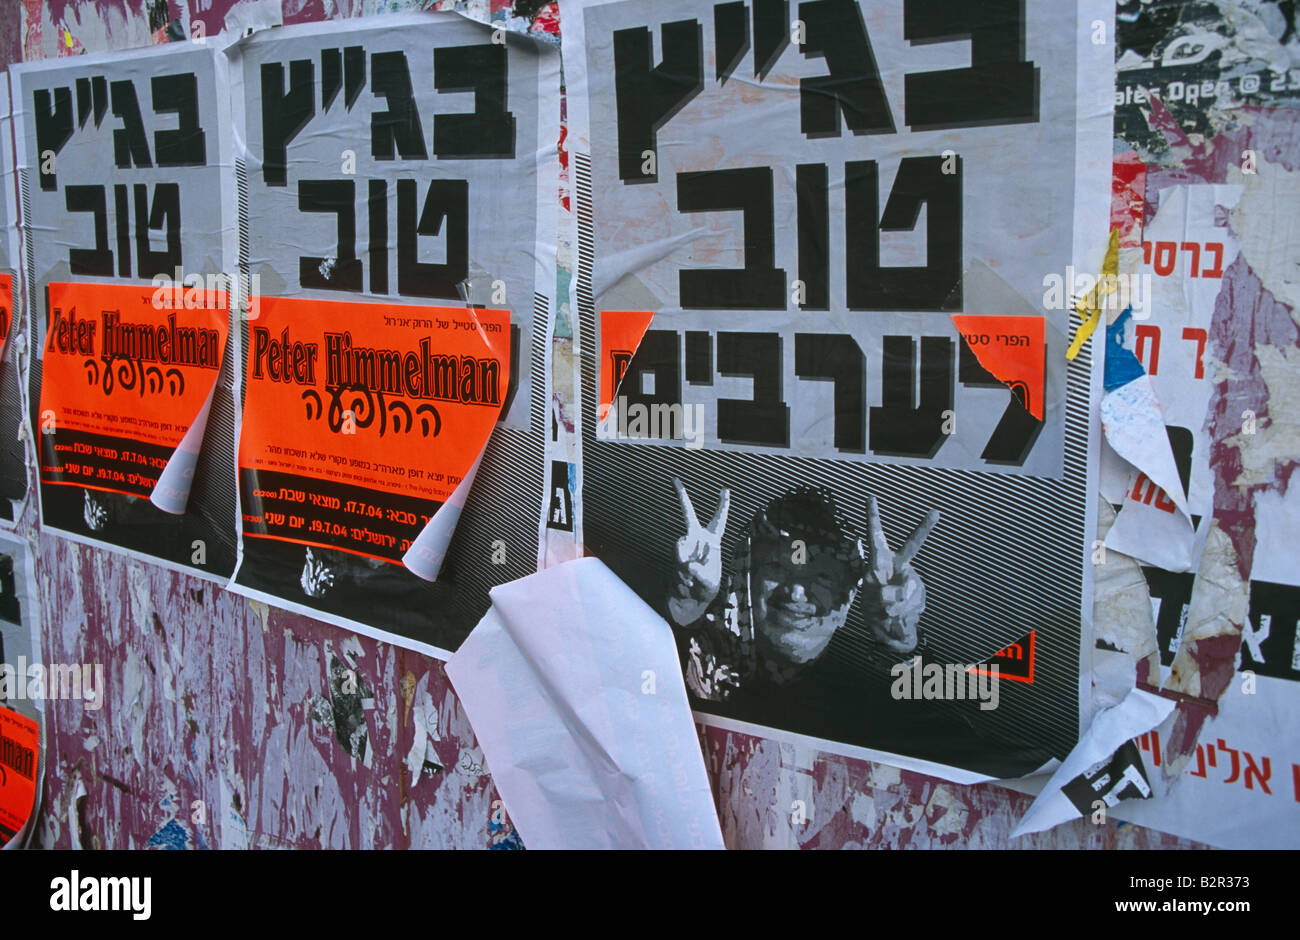 Posters in Hebrew language on wall, Jerusalem, Israel - Stock Image